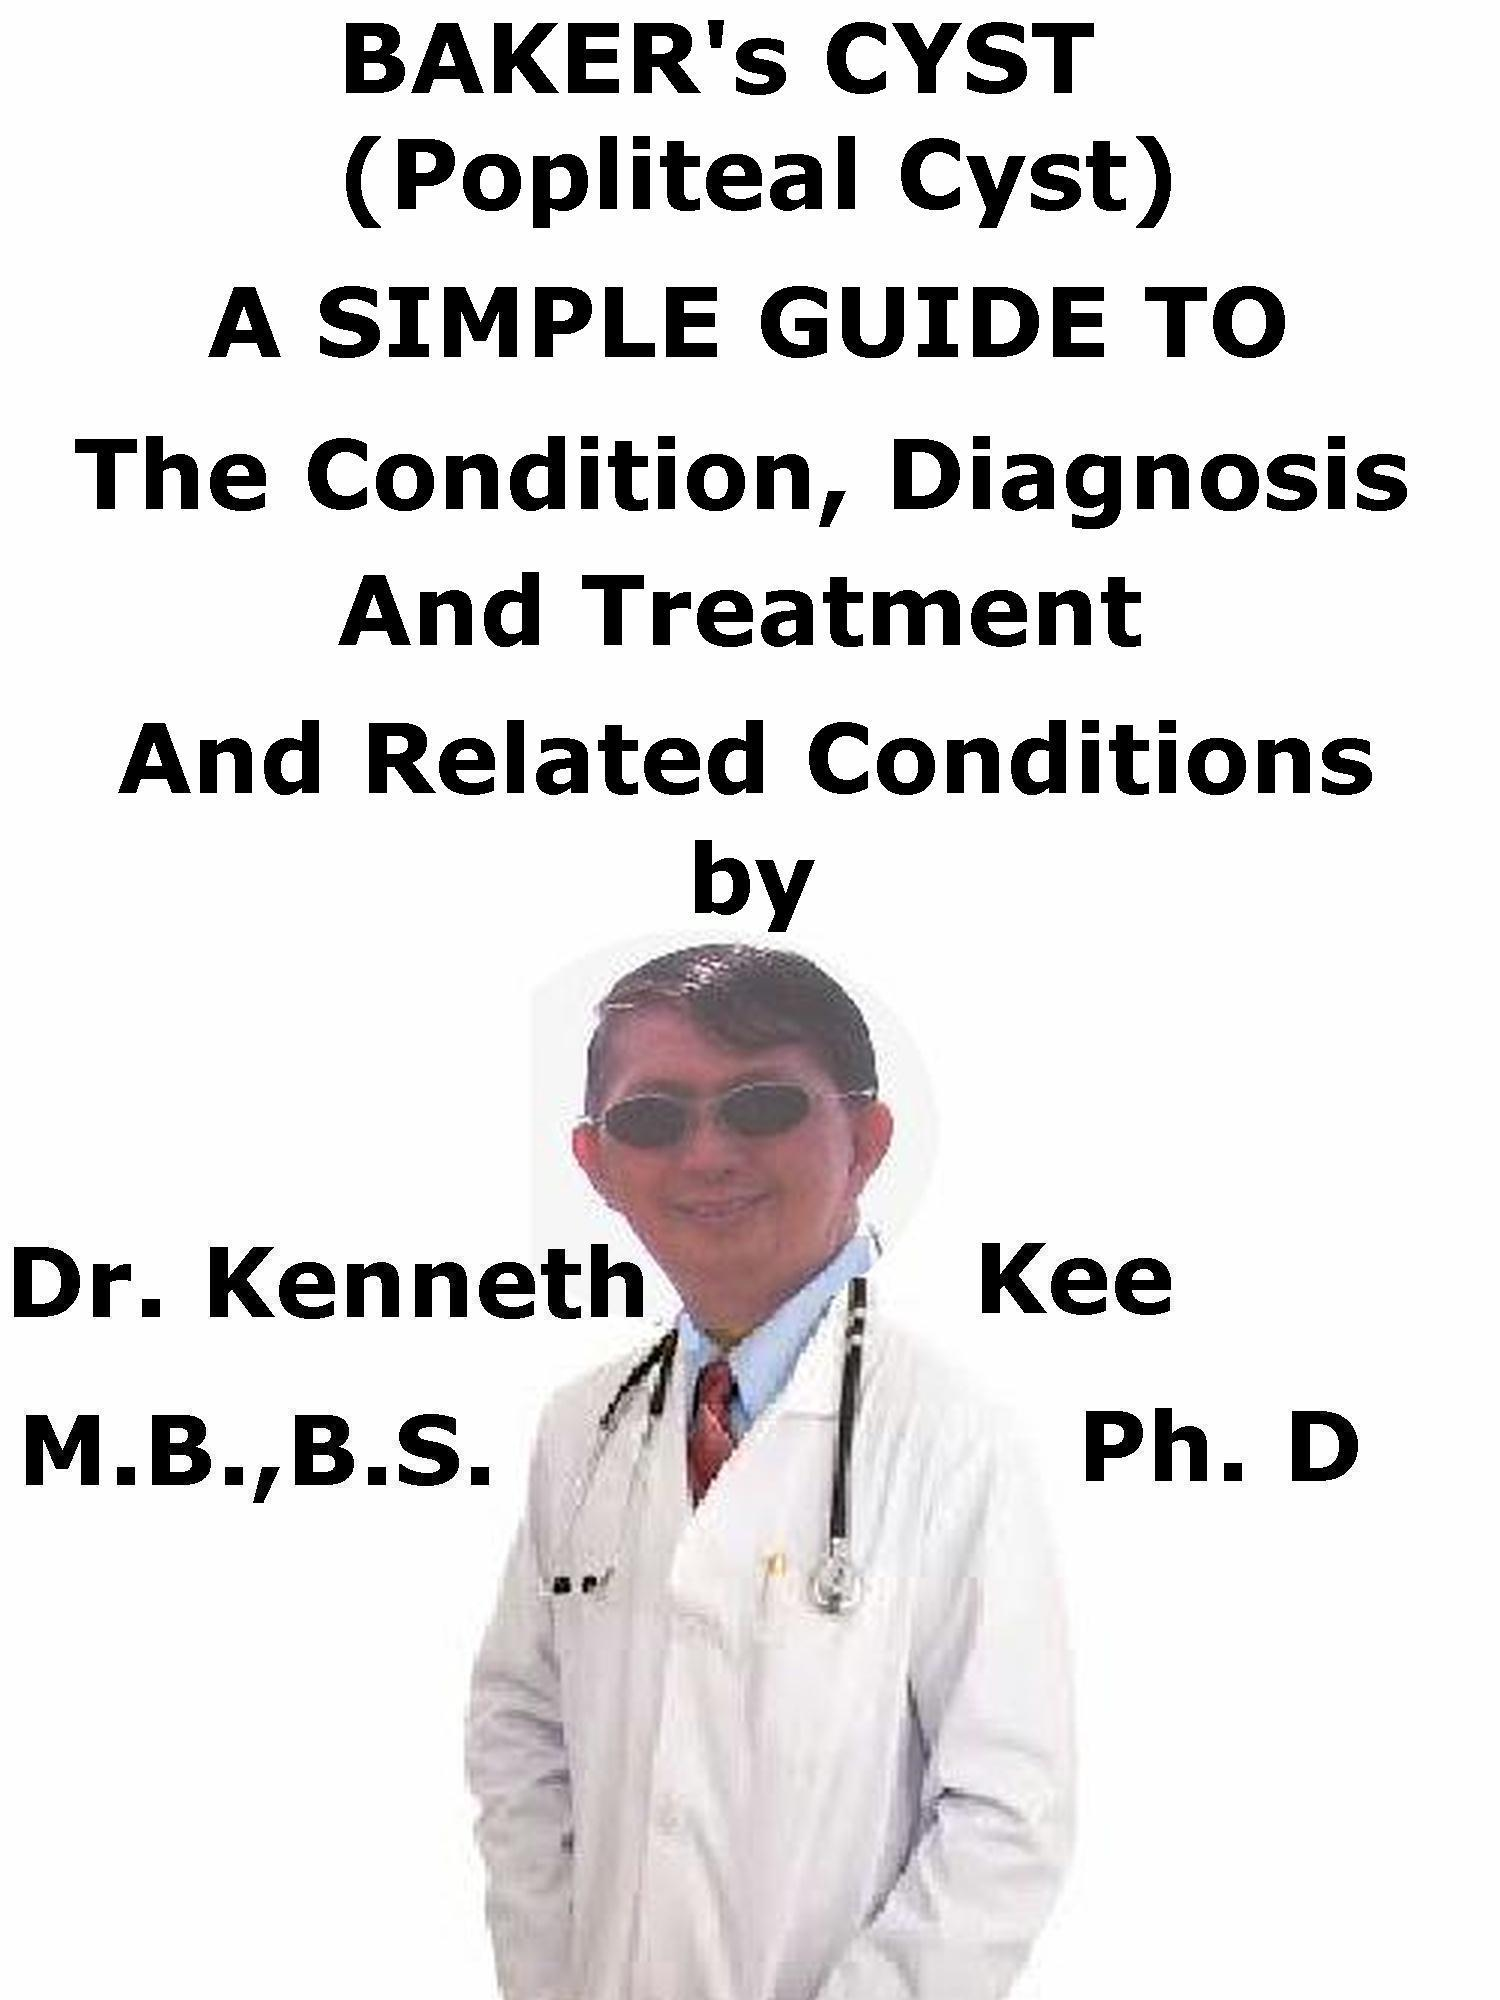 Baker's Cyst, (Popliteal Cyst) A Simple Guide To The Condition, Diagnosis, Treatment And Related Conditions  by  Kenneth Kee